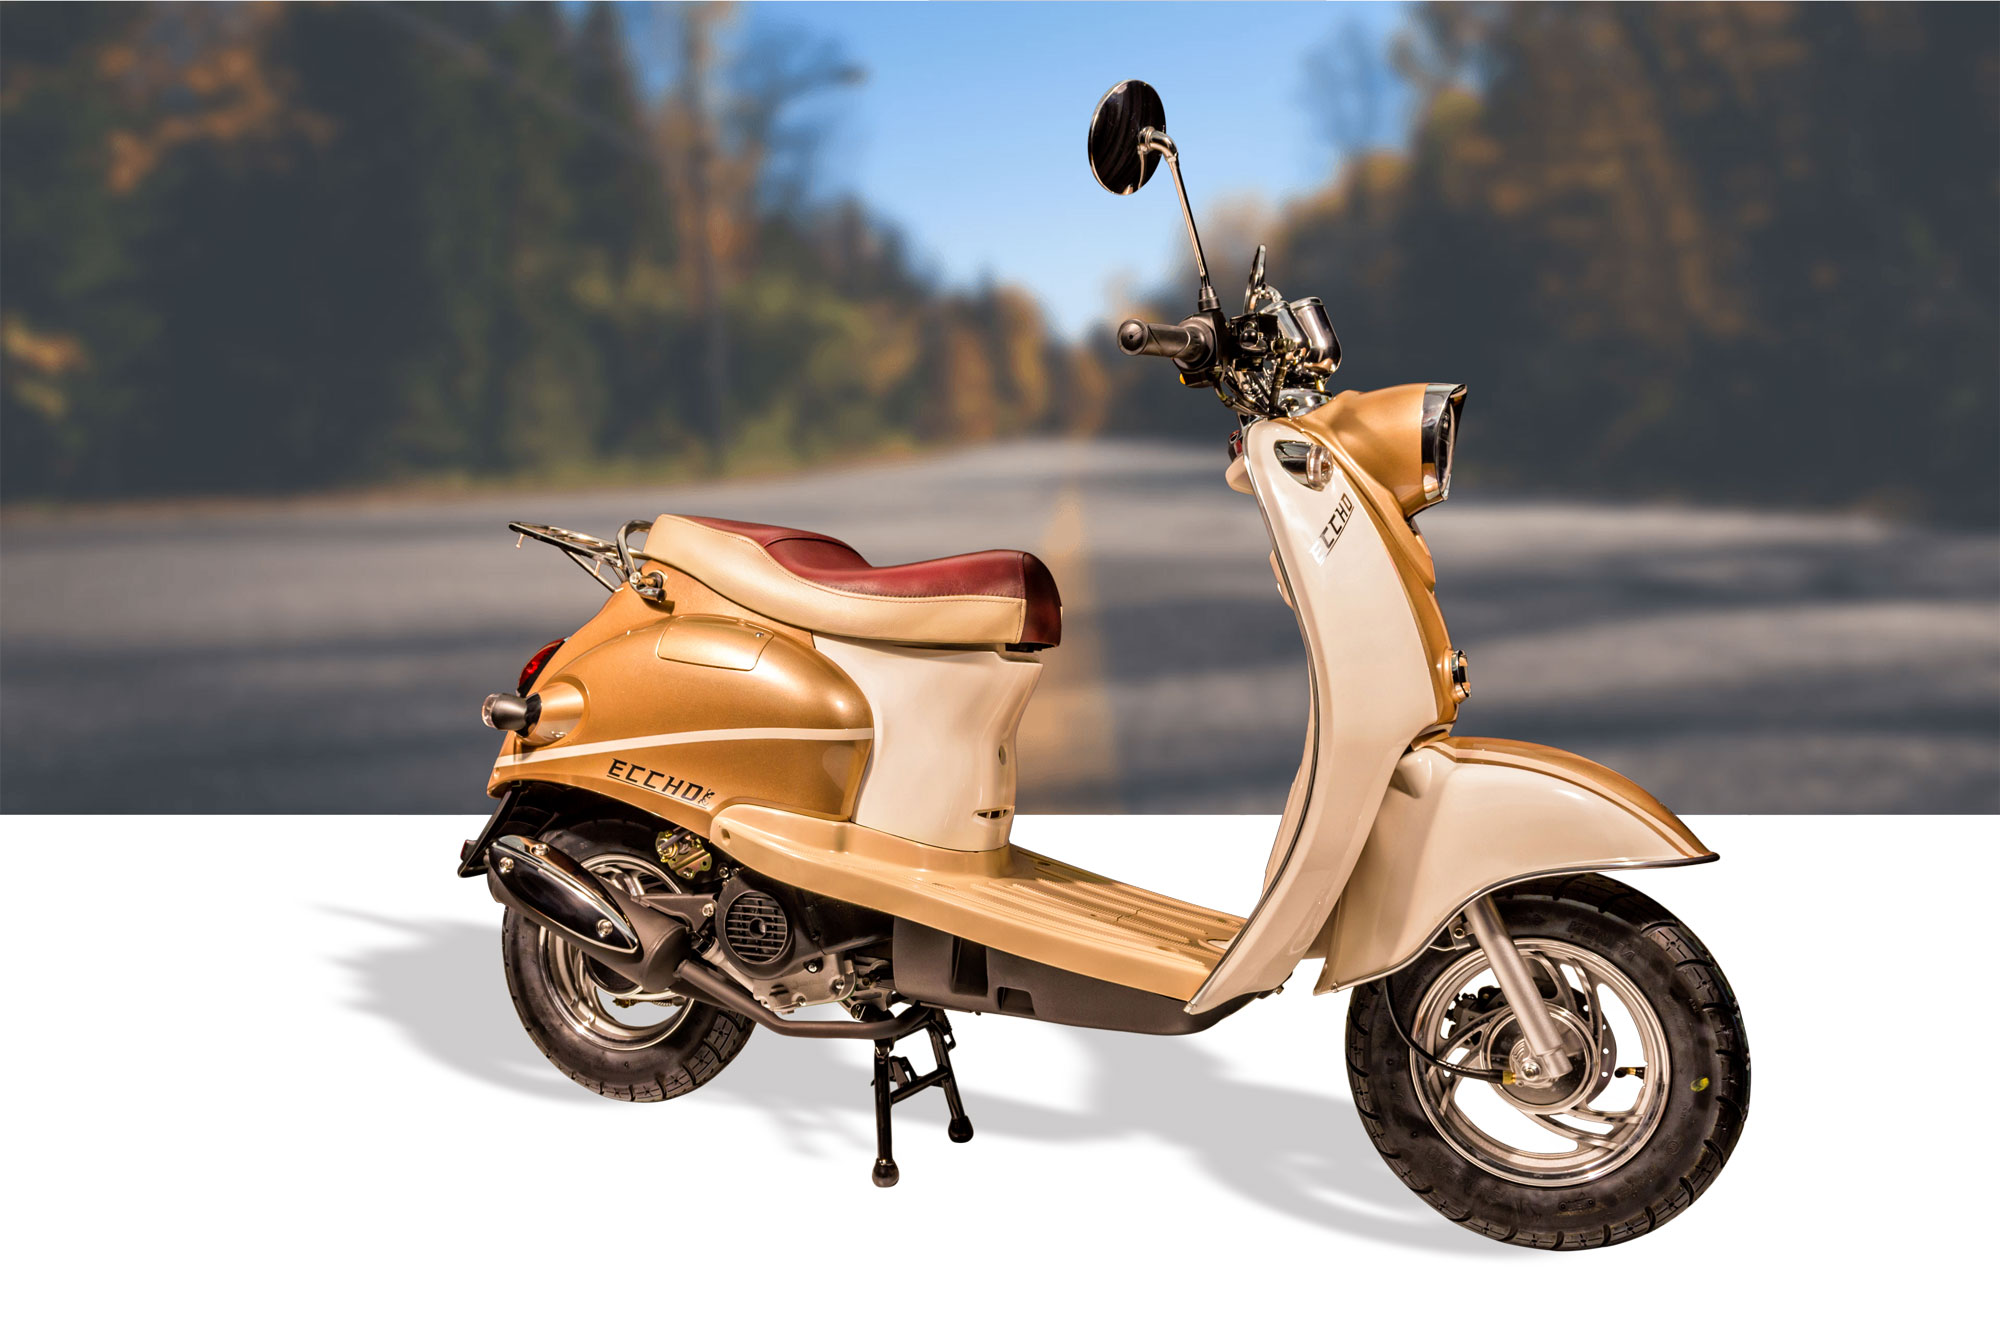 SCOOTER-50-ECCHO-RETRO-50-GOLD-II-02